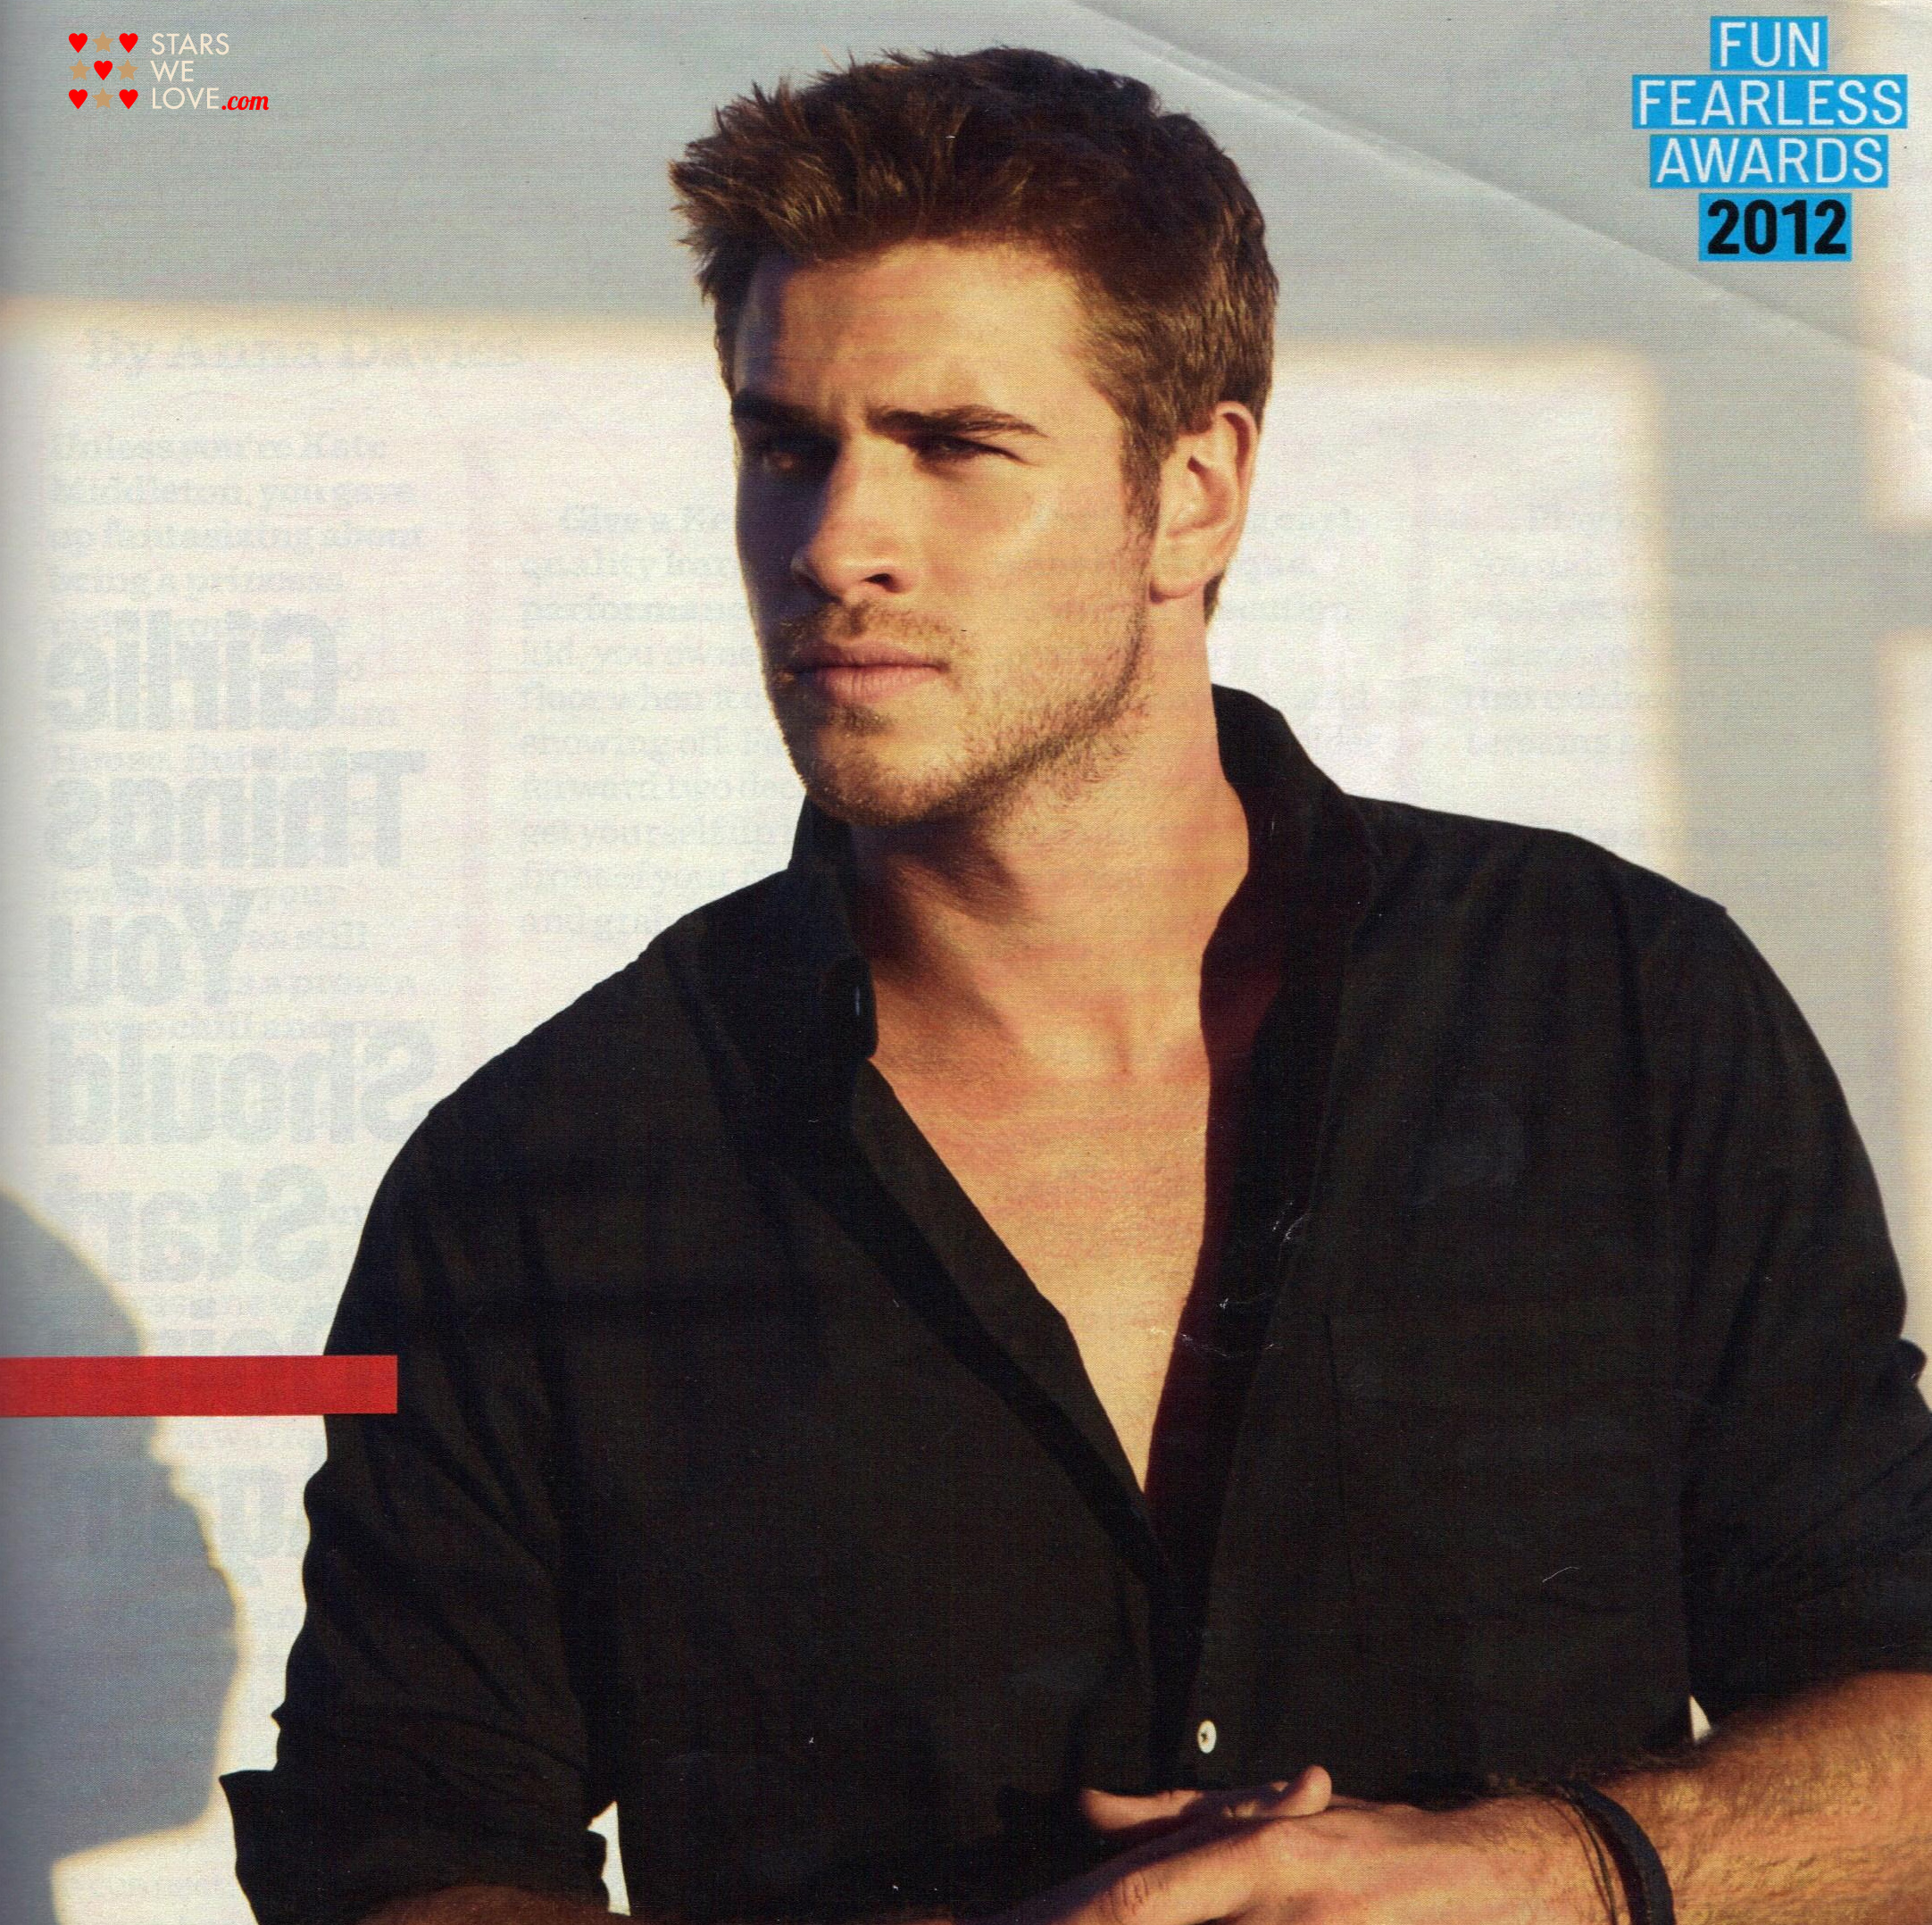 Liam Hemsworth photo (liam_hemsworth002, 2164 x 2156 pixels, 1914 kB)